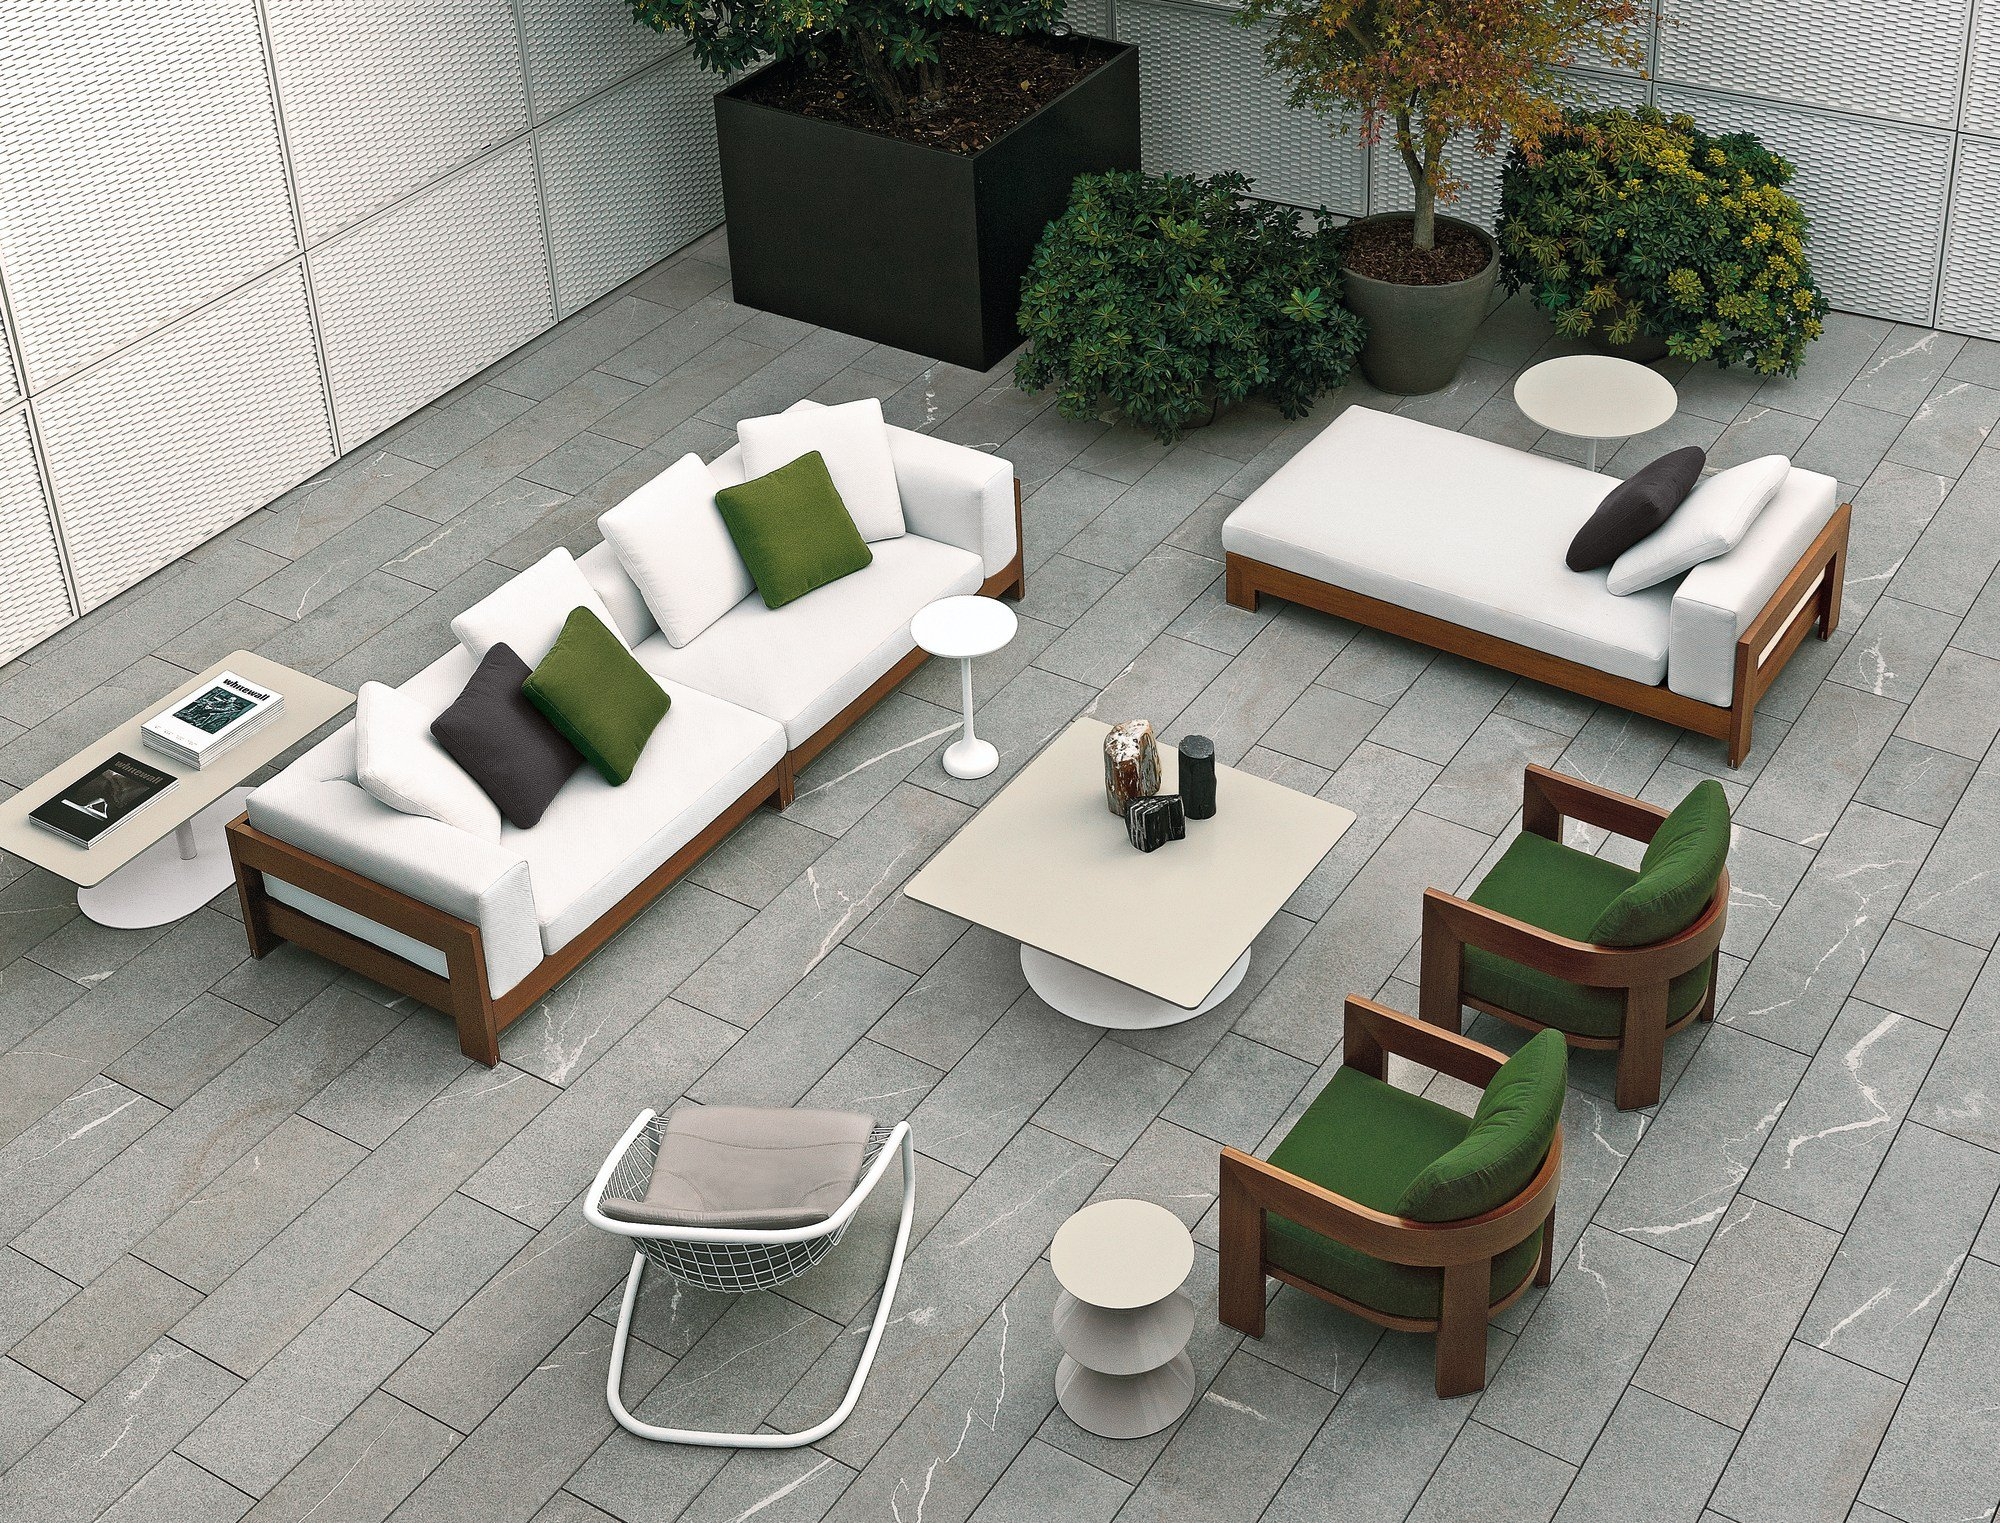 Alison iroko outdoor by minotti design roberto minotti for Divano rattan leroy merlin